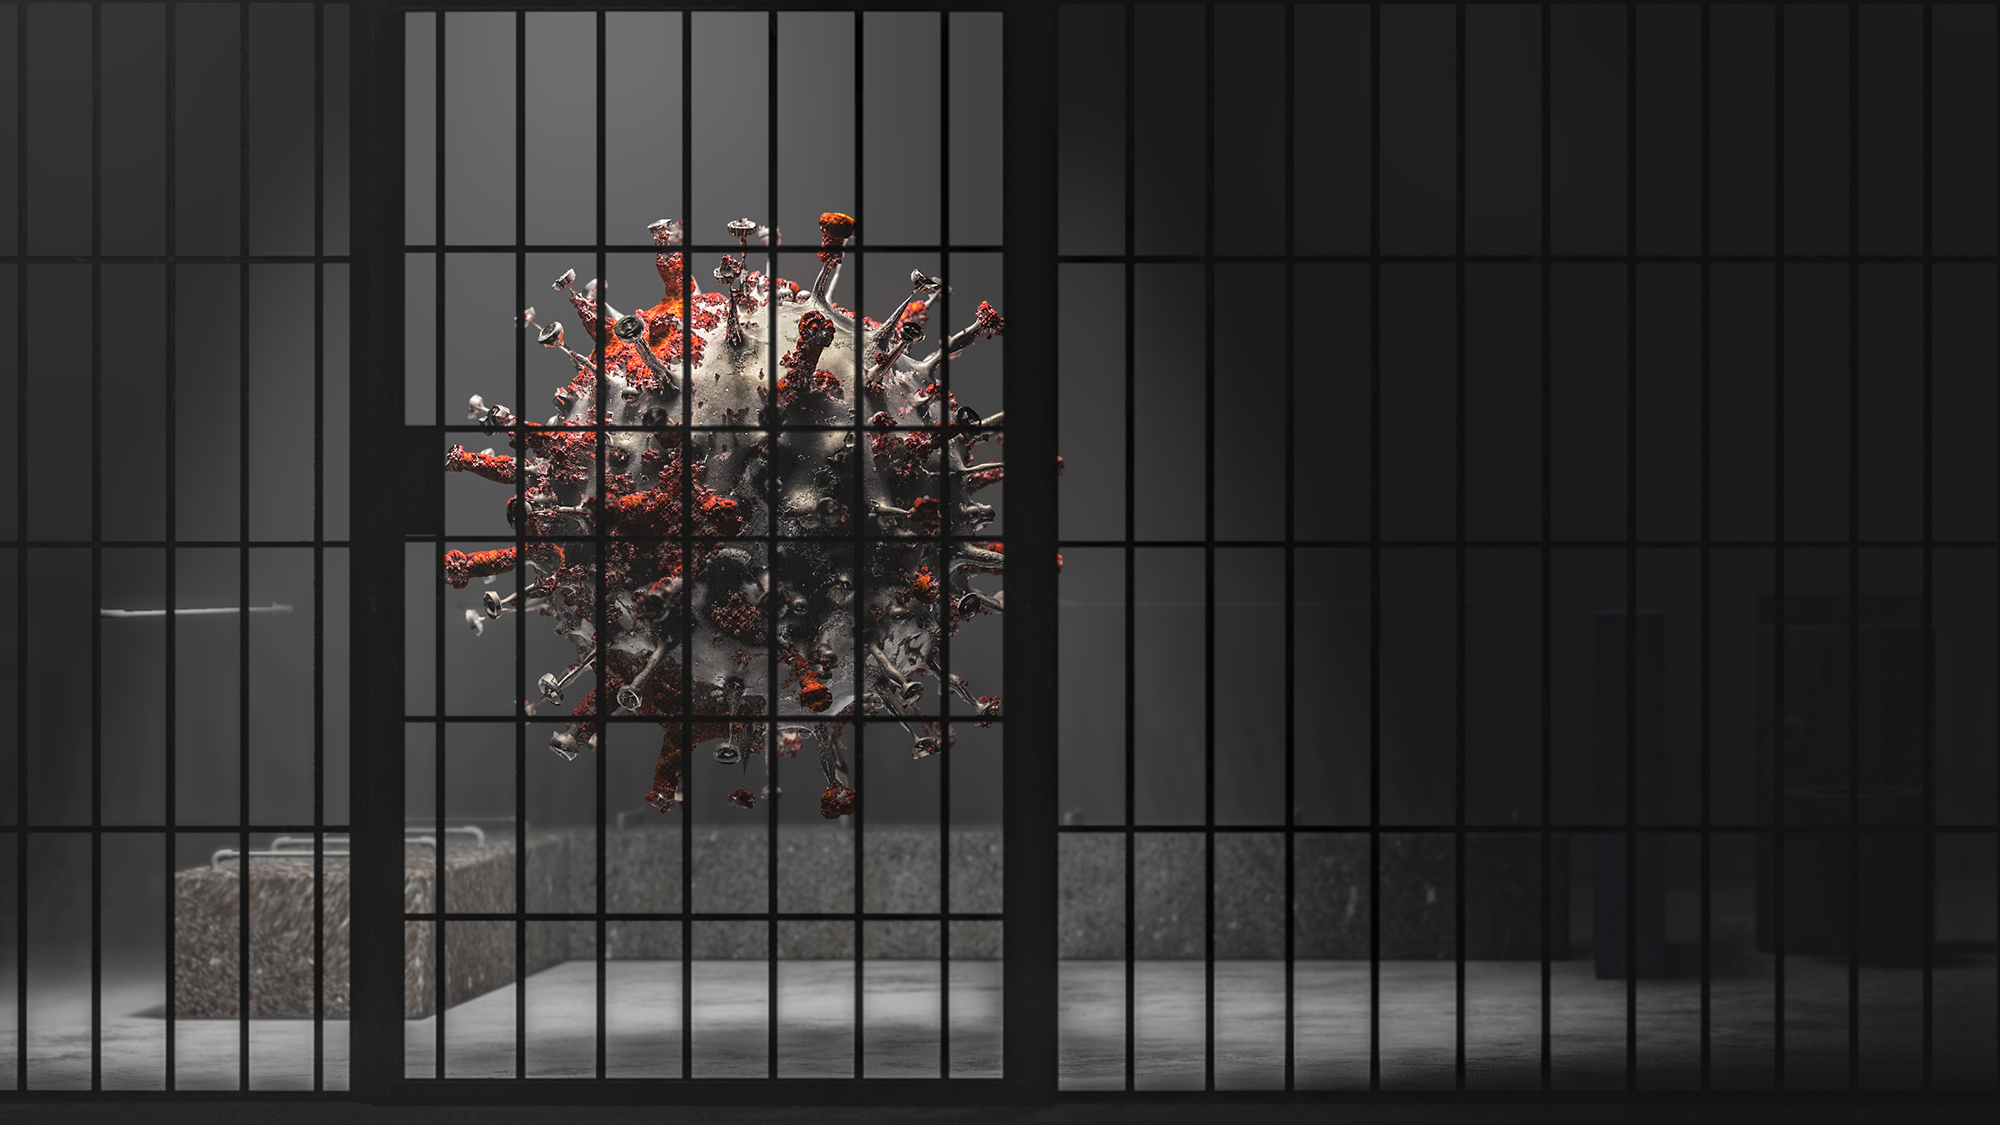 Illustration of a coronavirus in a jail cell